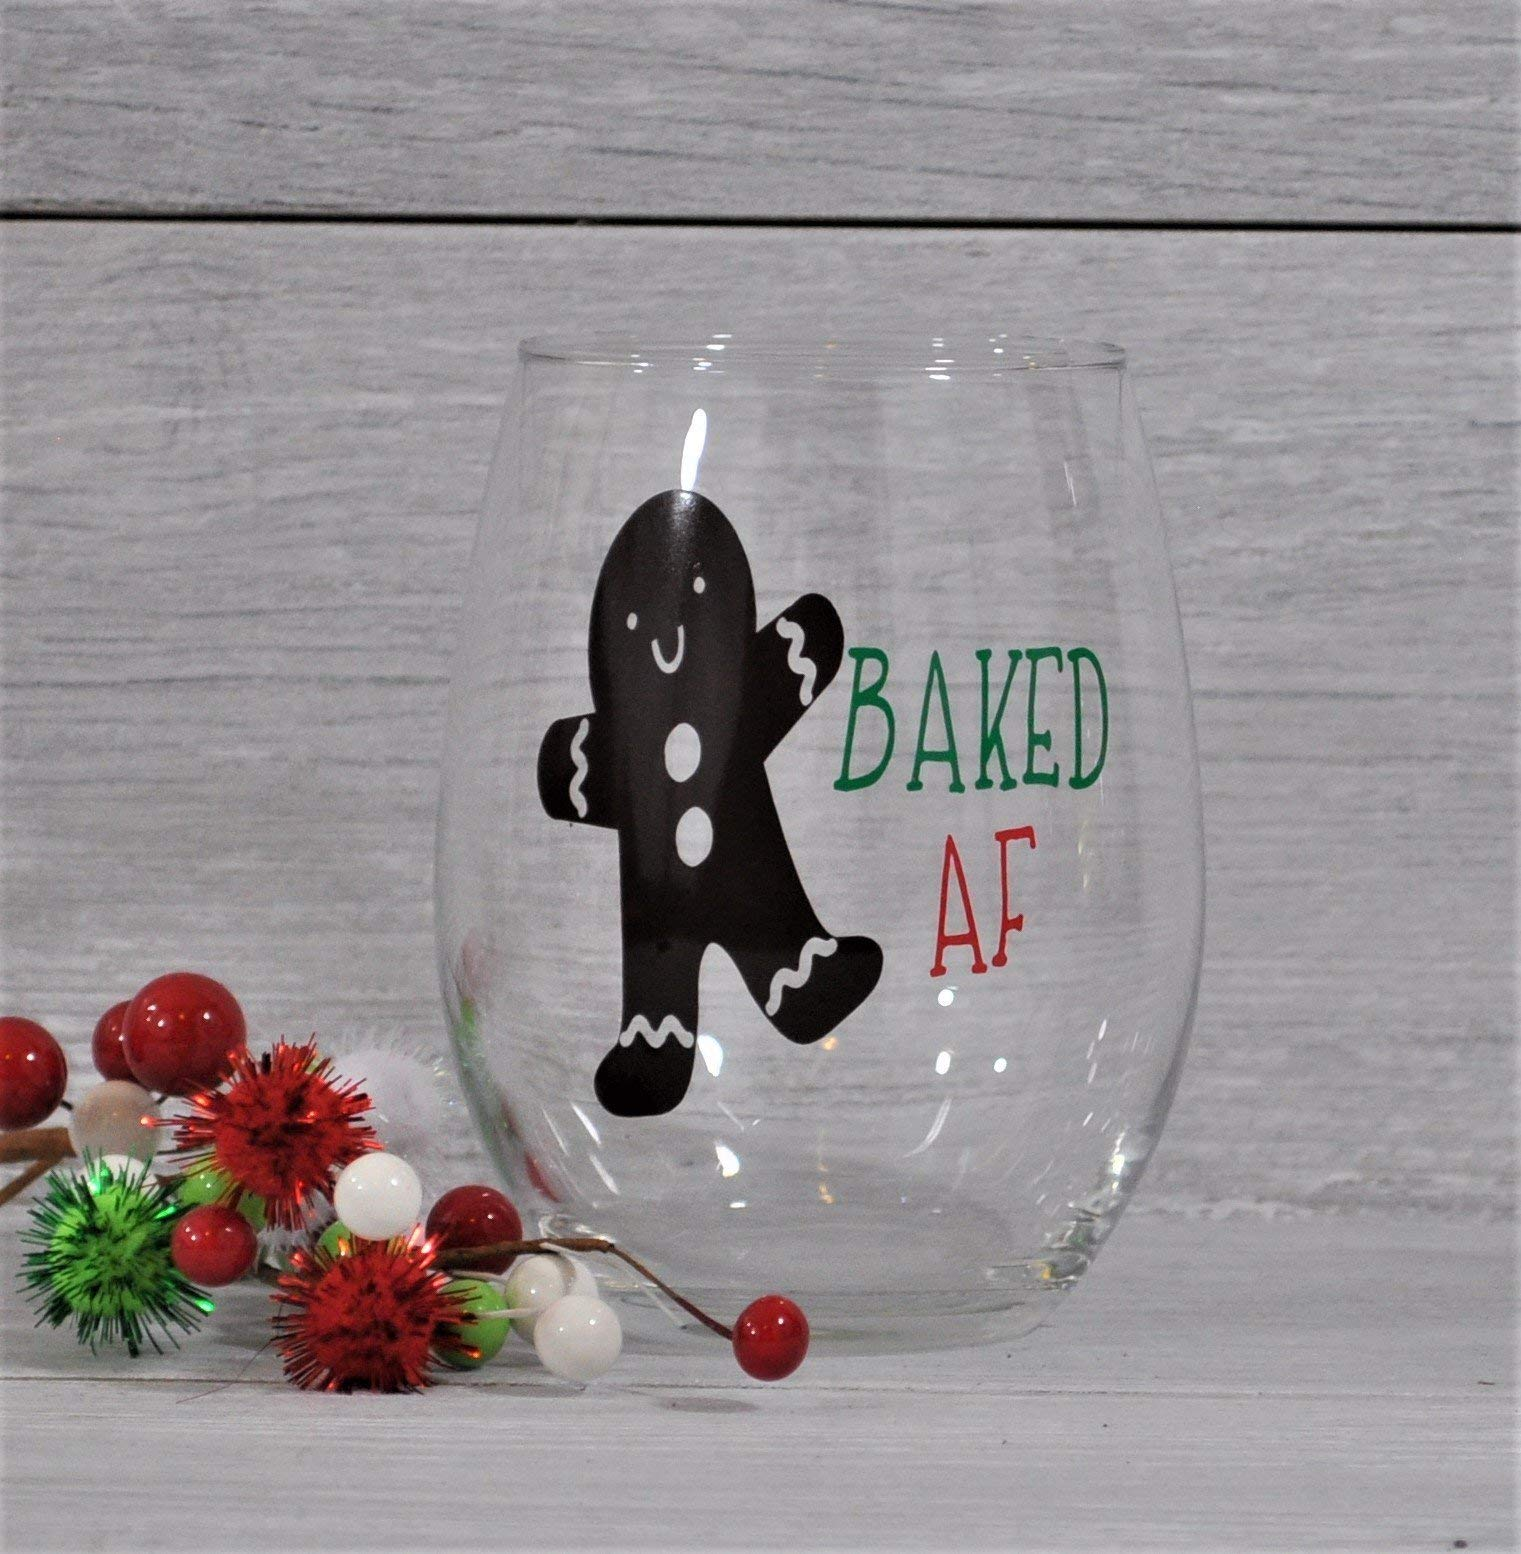 Christmas Wine Glass, Wine Glass, Funny Wine Glass, Christmas Gift, Gifts under 10, Baked A F, Funny Gift, Wine Gift,Friend Gift